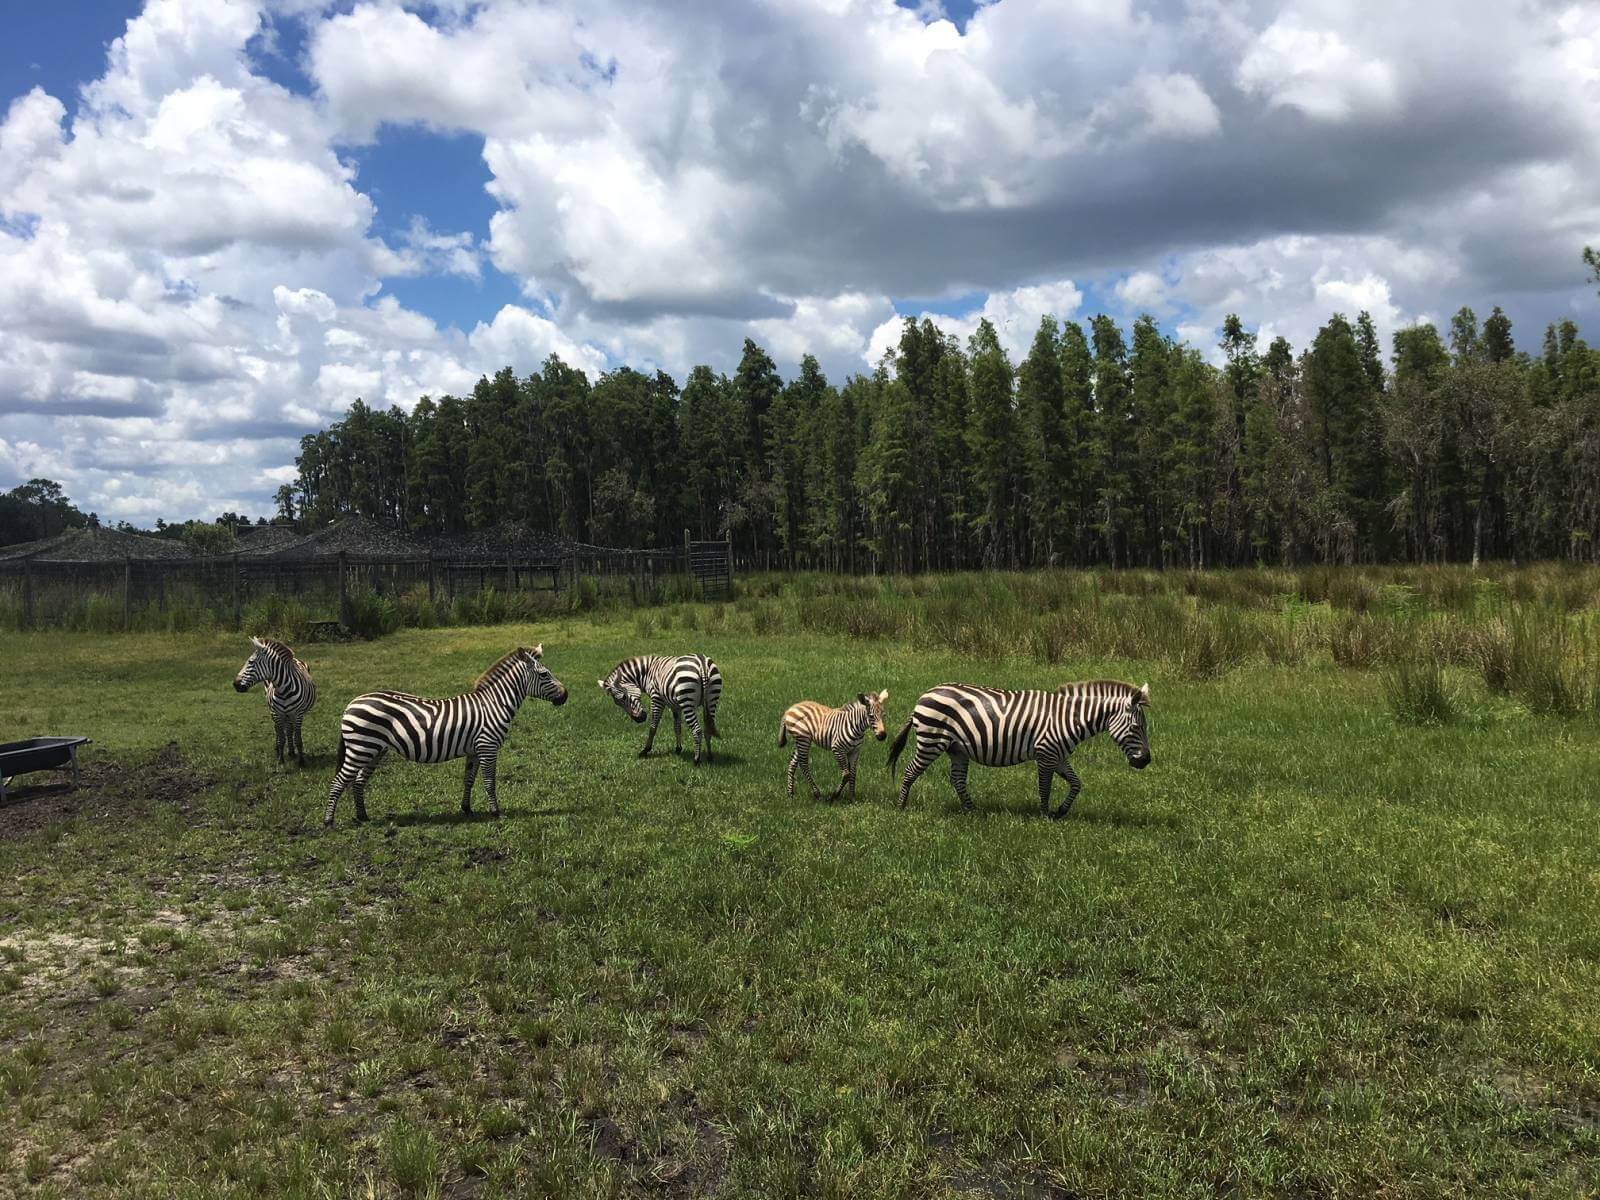 See zebras at Safari Wilderness in Lakeland, Florida which is an easy day trip from Sarasota. What to expect when you visit. Must Do Visitor Guides | MustDo.com